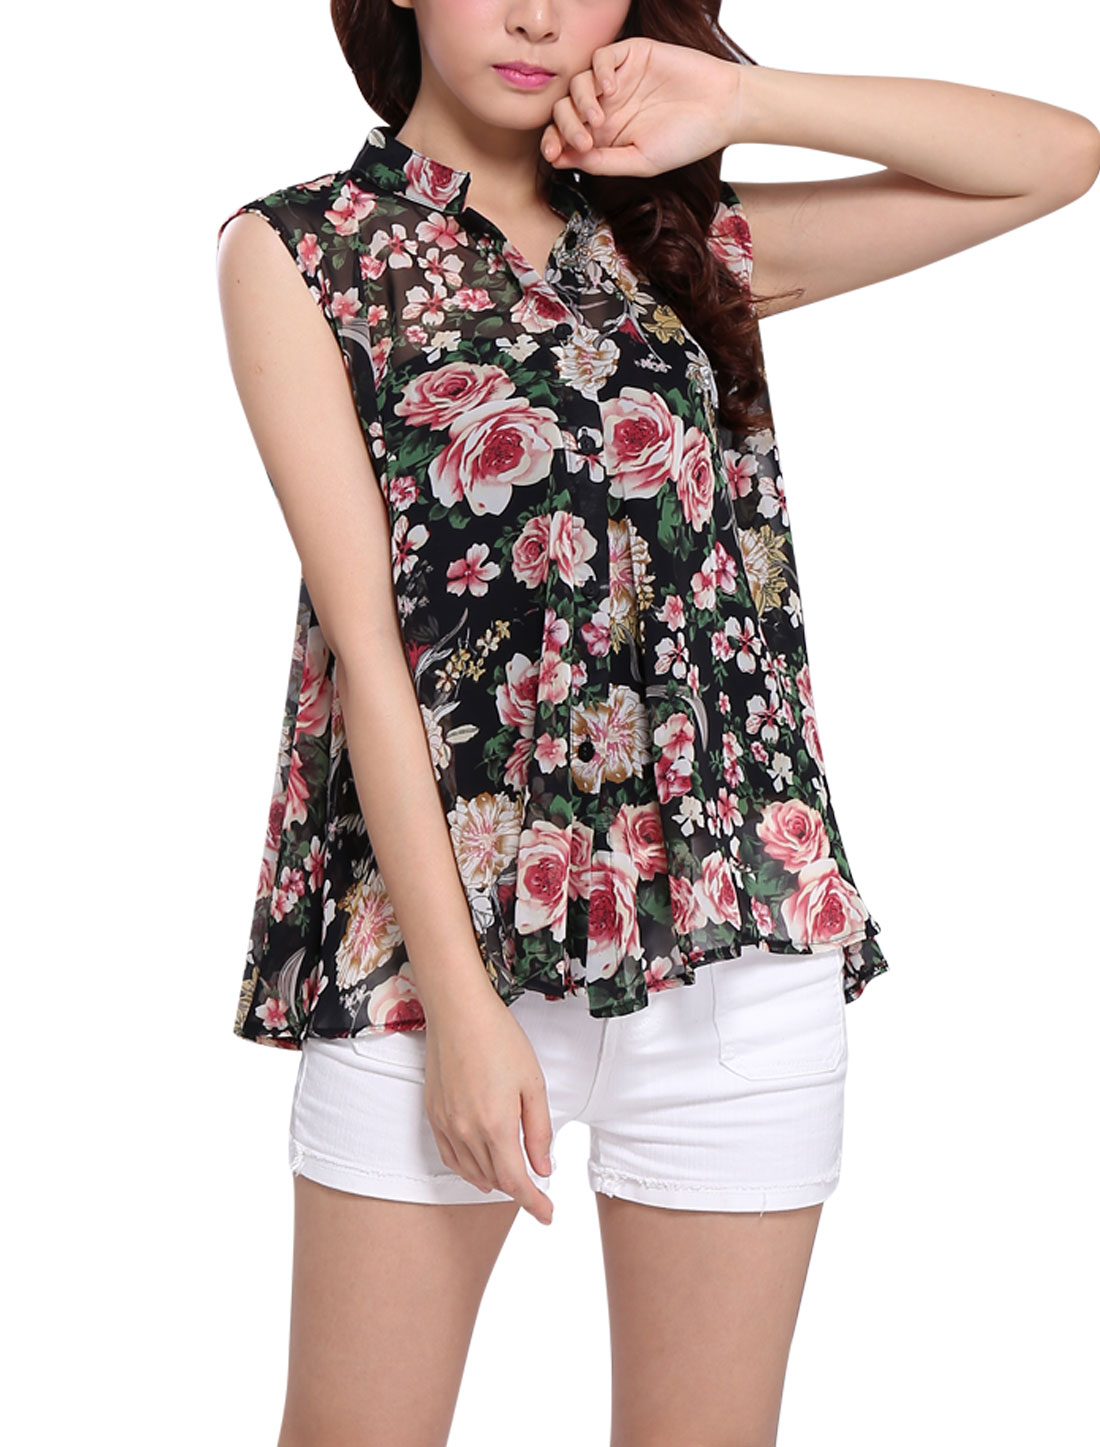 Lady Stand Collar Single Breasted Floral Prints Blouse Black XS